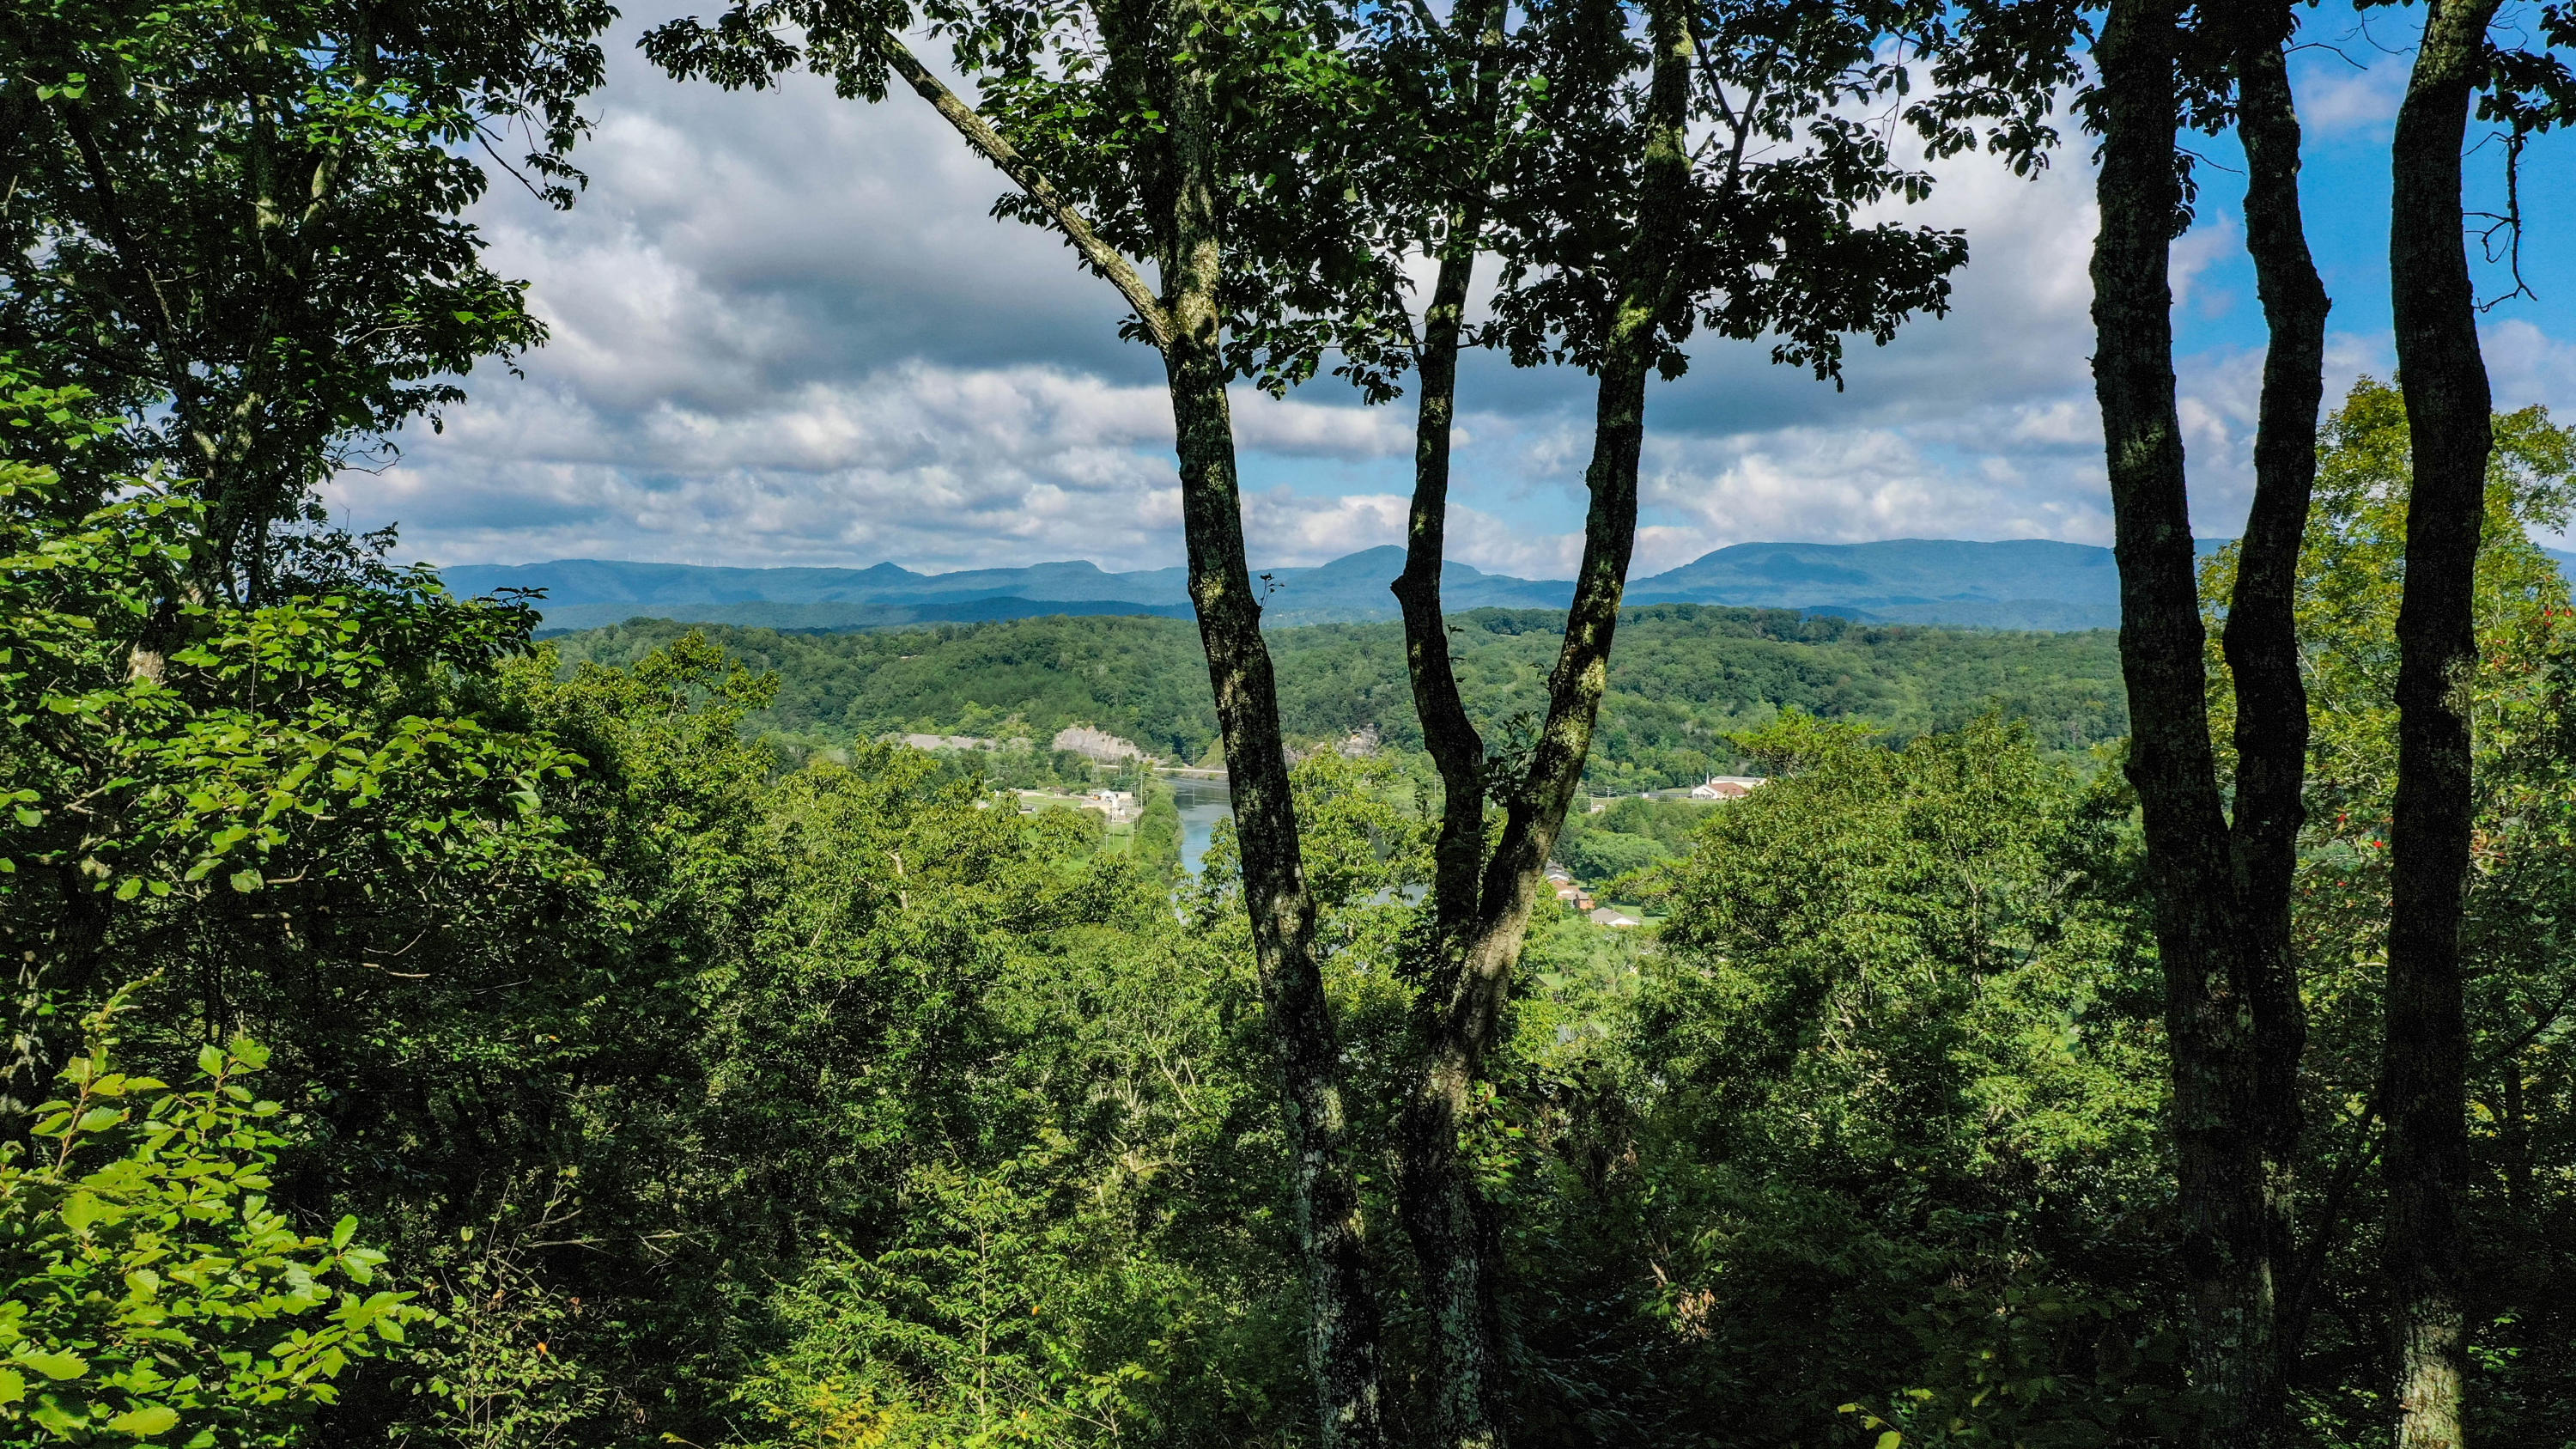 20190829232149804987000000-o Clinton anderson county homes for sale